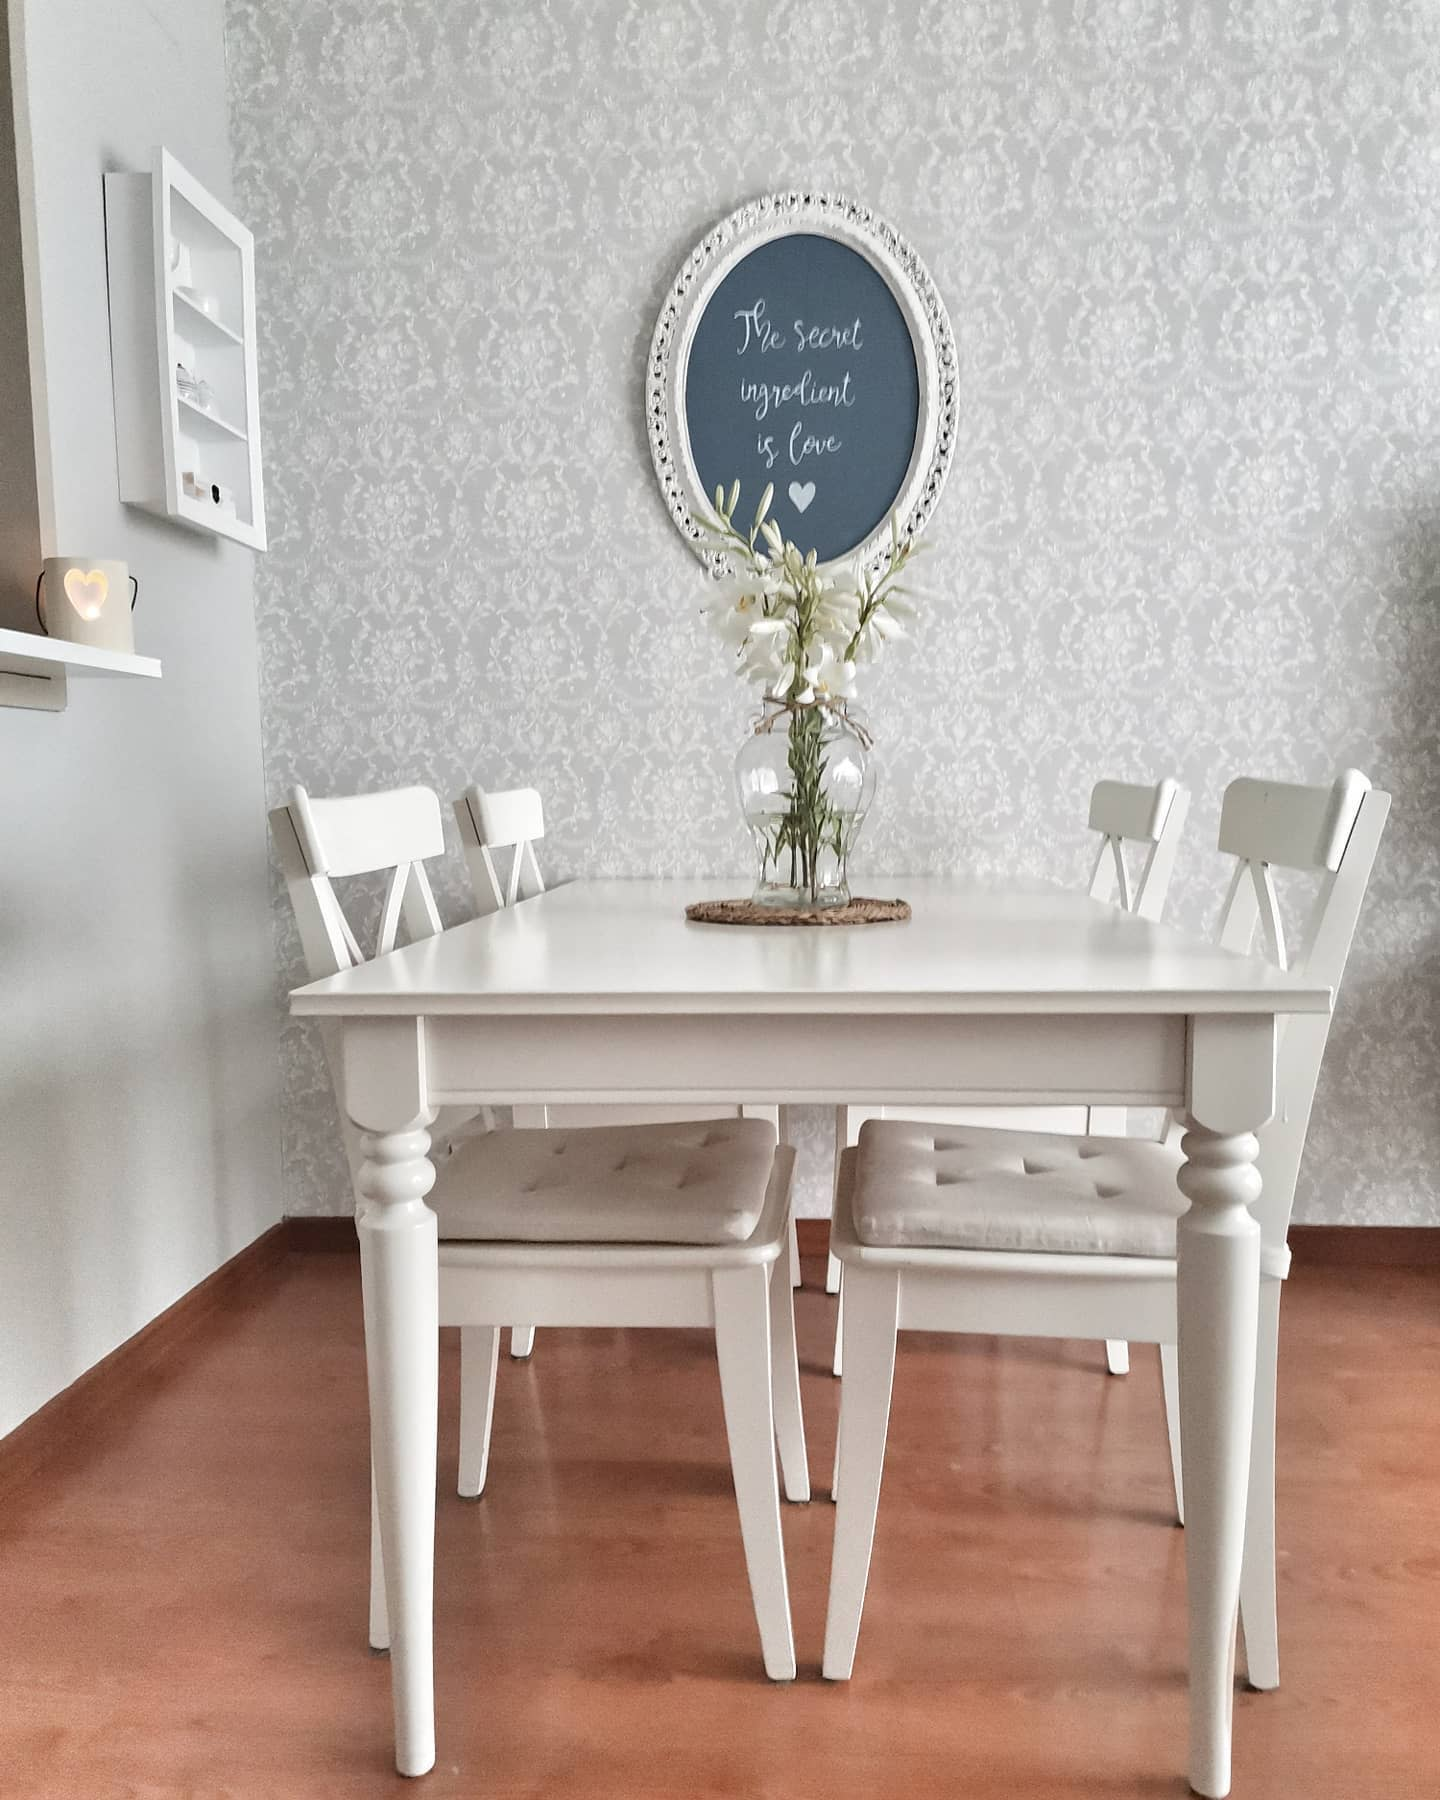 Vintage Dining Room Ideas -our.loved.place